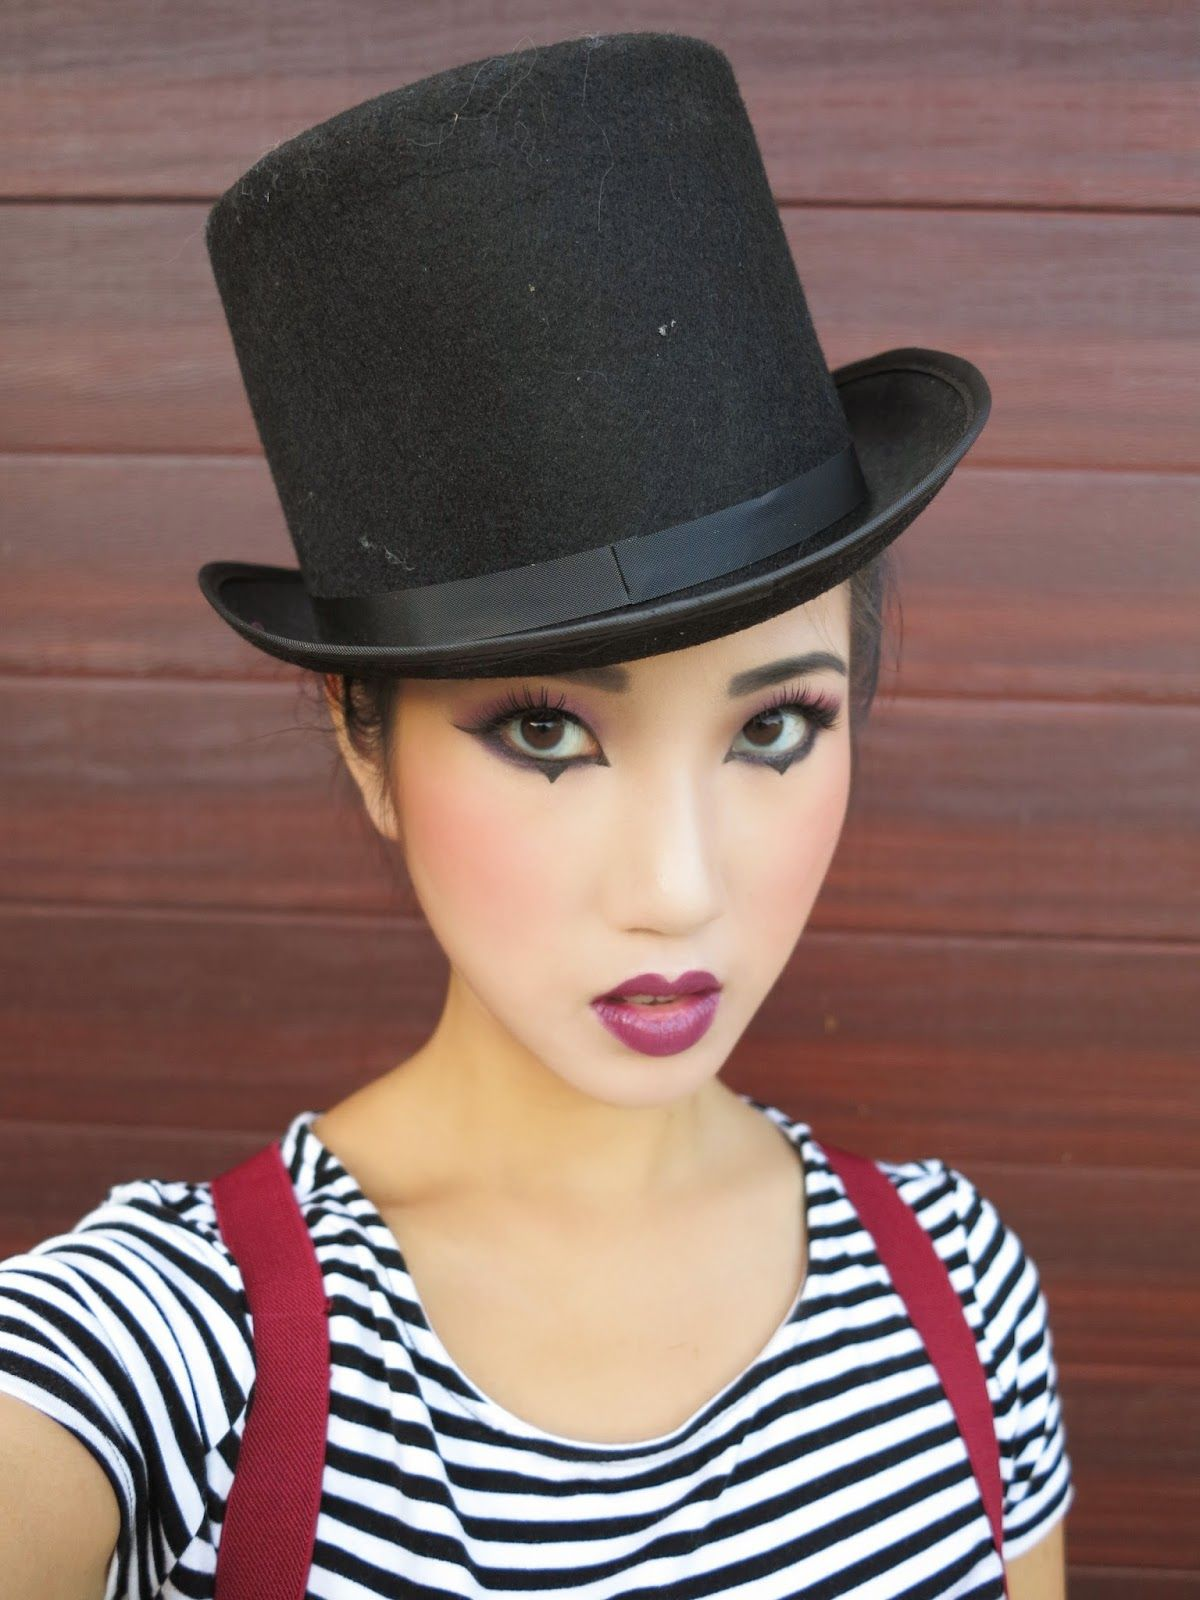 Kimkine Mime Makeup And Costume Mime Makeup Mime